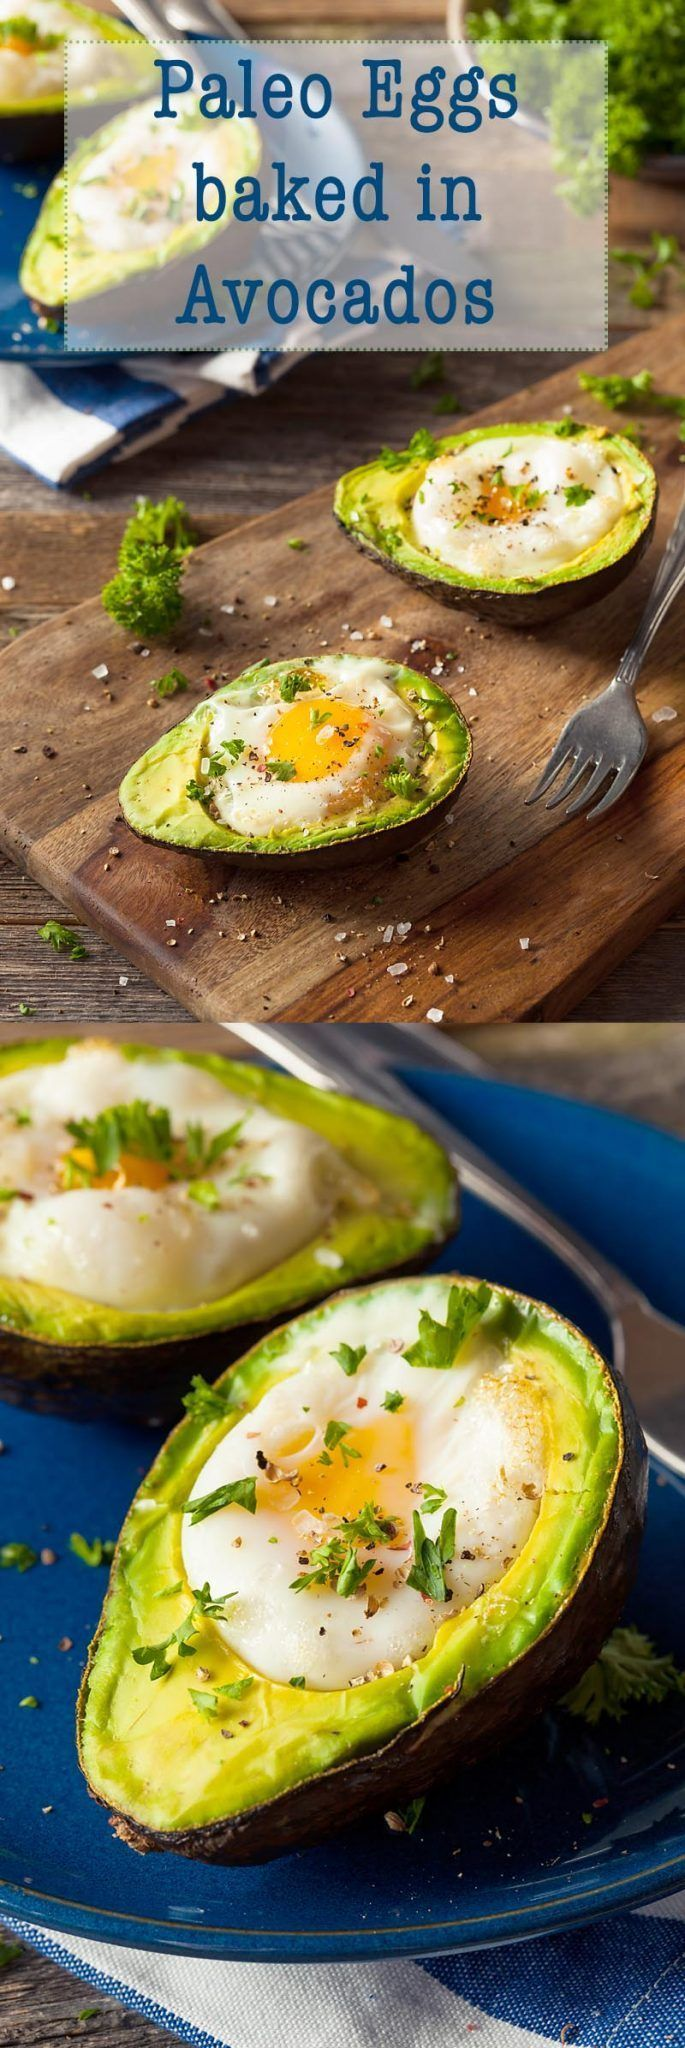 "Eggs Baked in Avocados. Paleo avocado eggs are a quick and easy way to bake eggs and add heart healthy fats to your diet."" width="